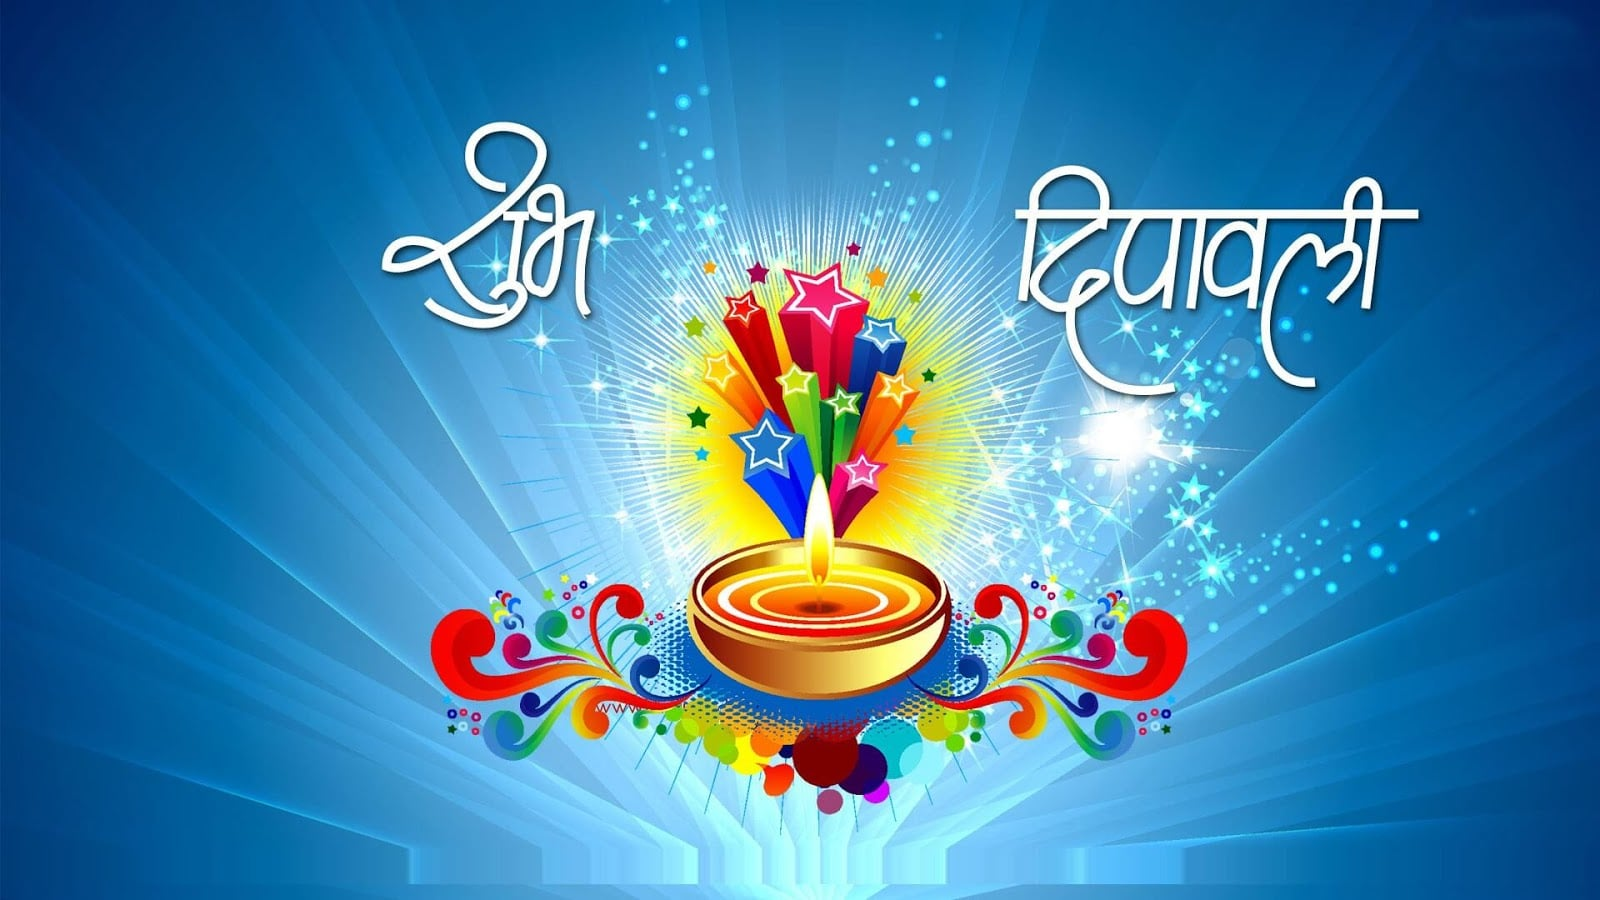 Shubh Deepawali Wallpaper